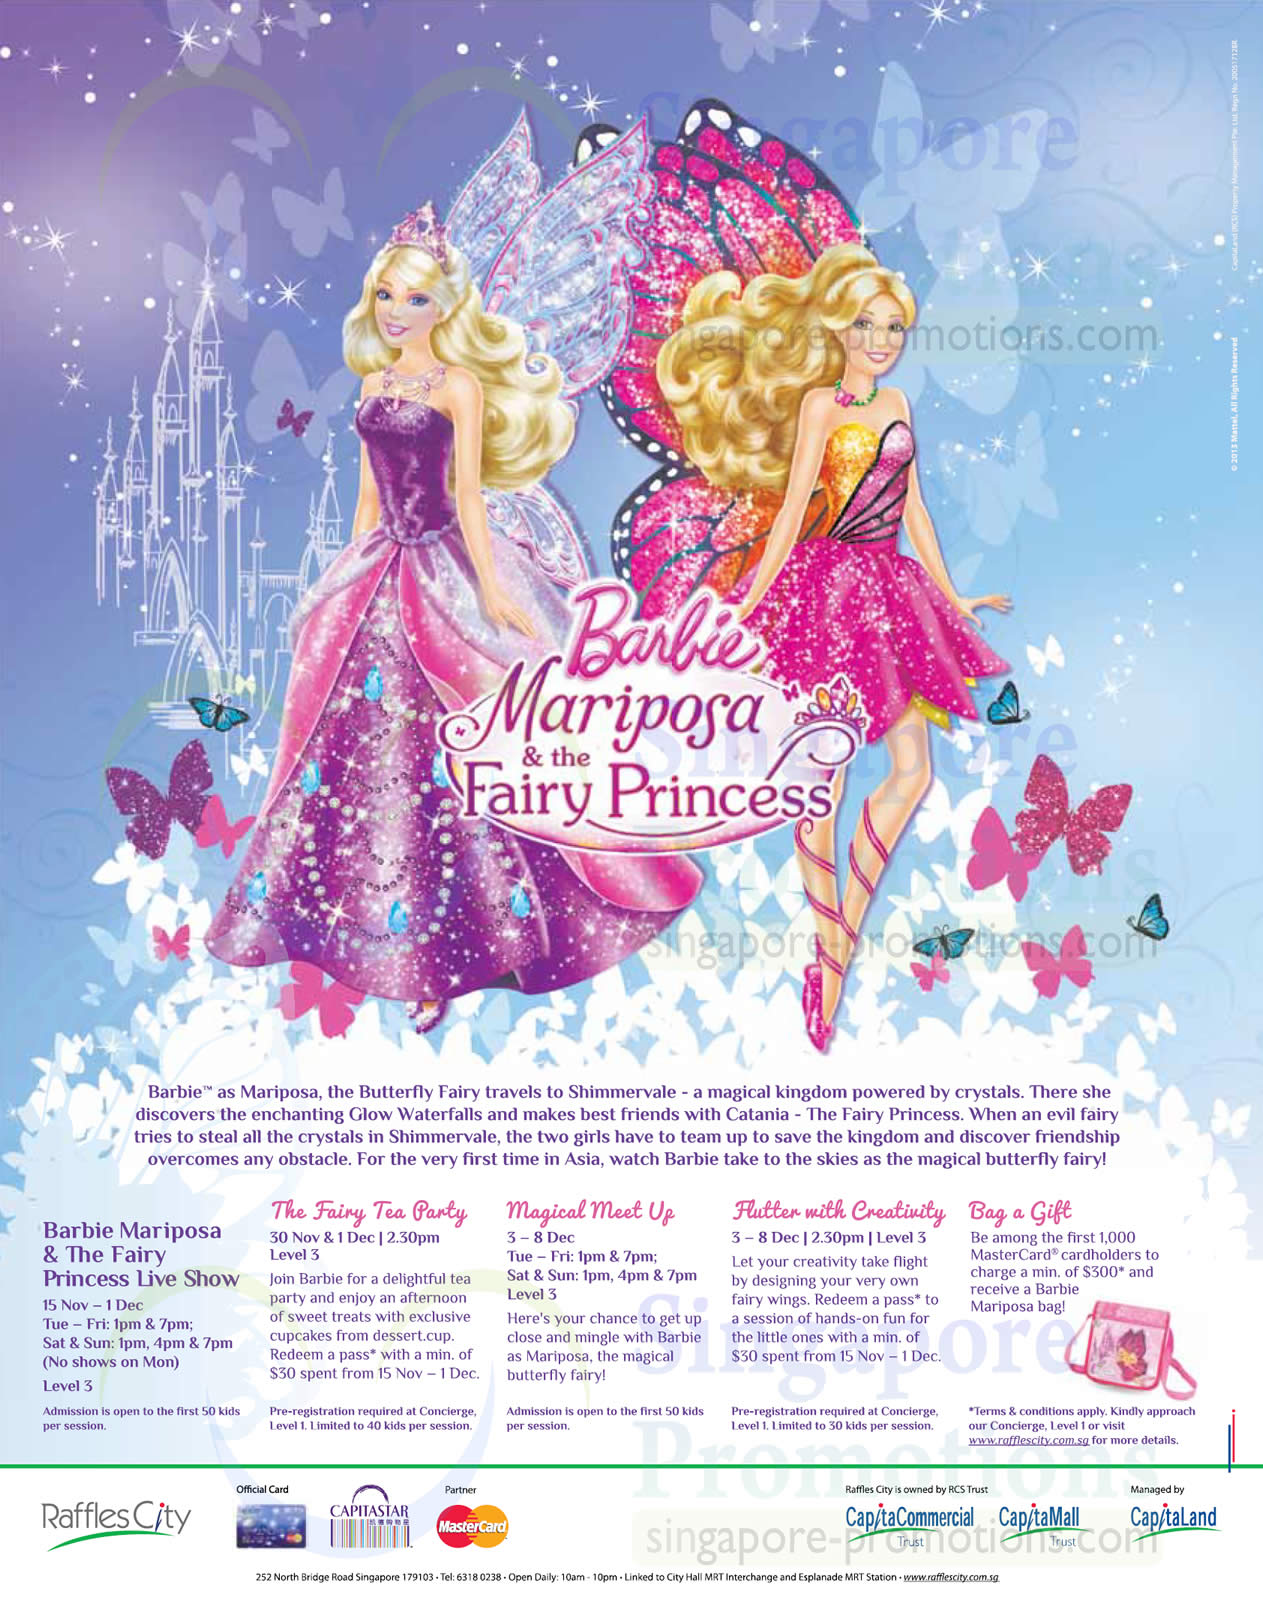 Barbie Activities, Promotions, Shows